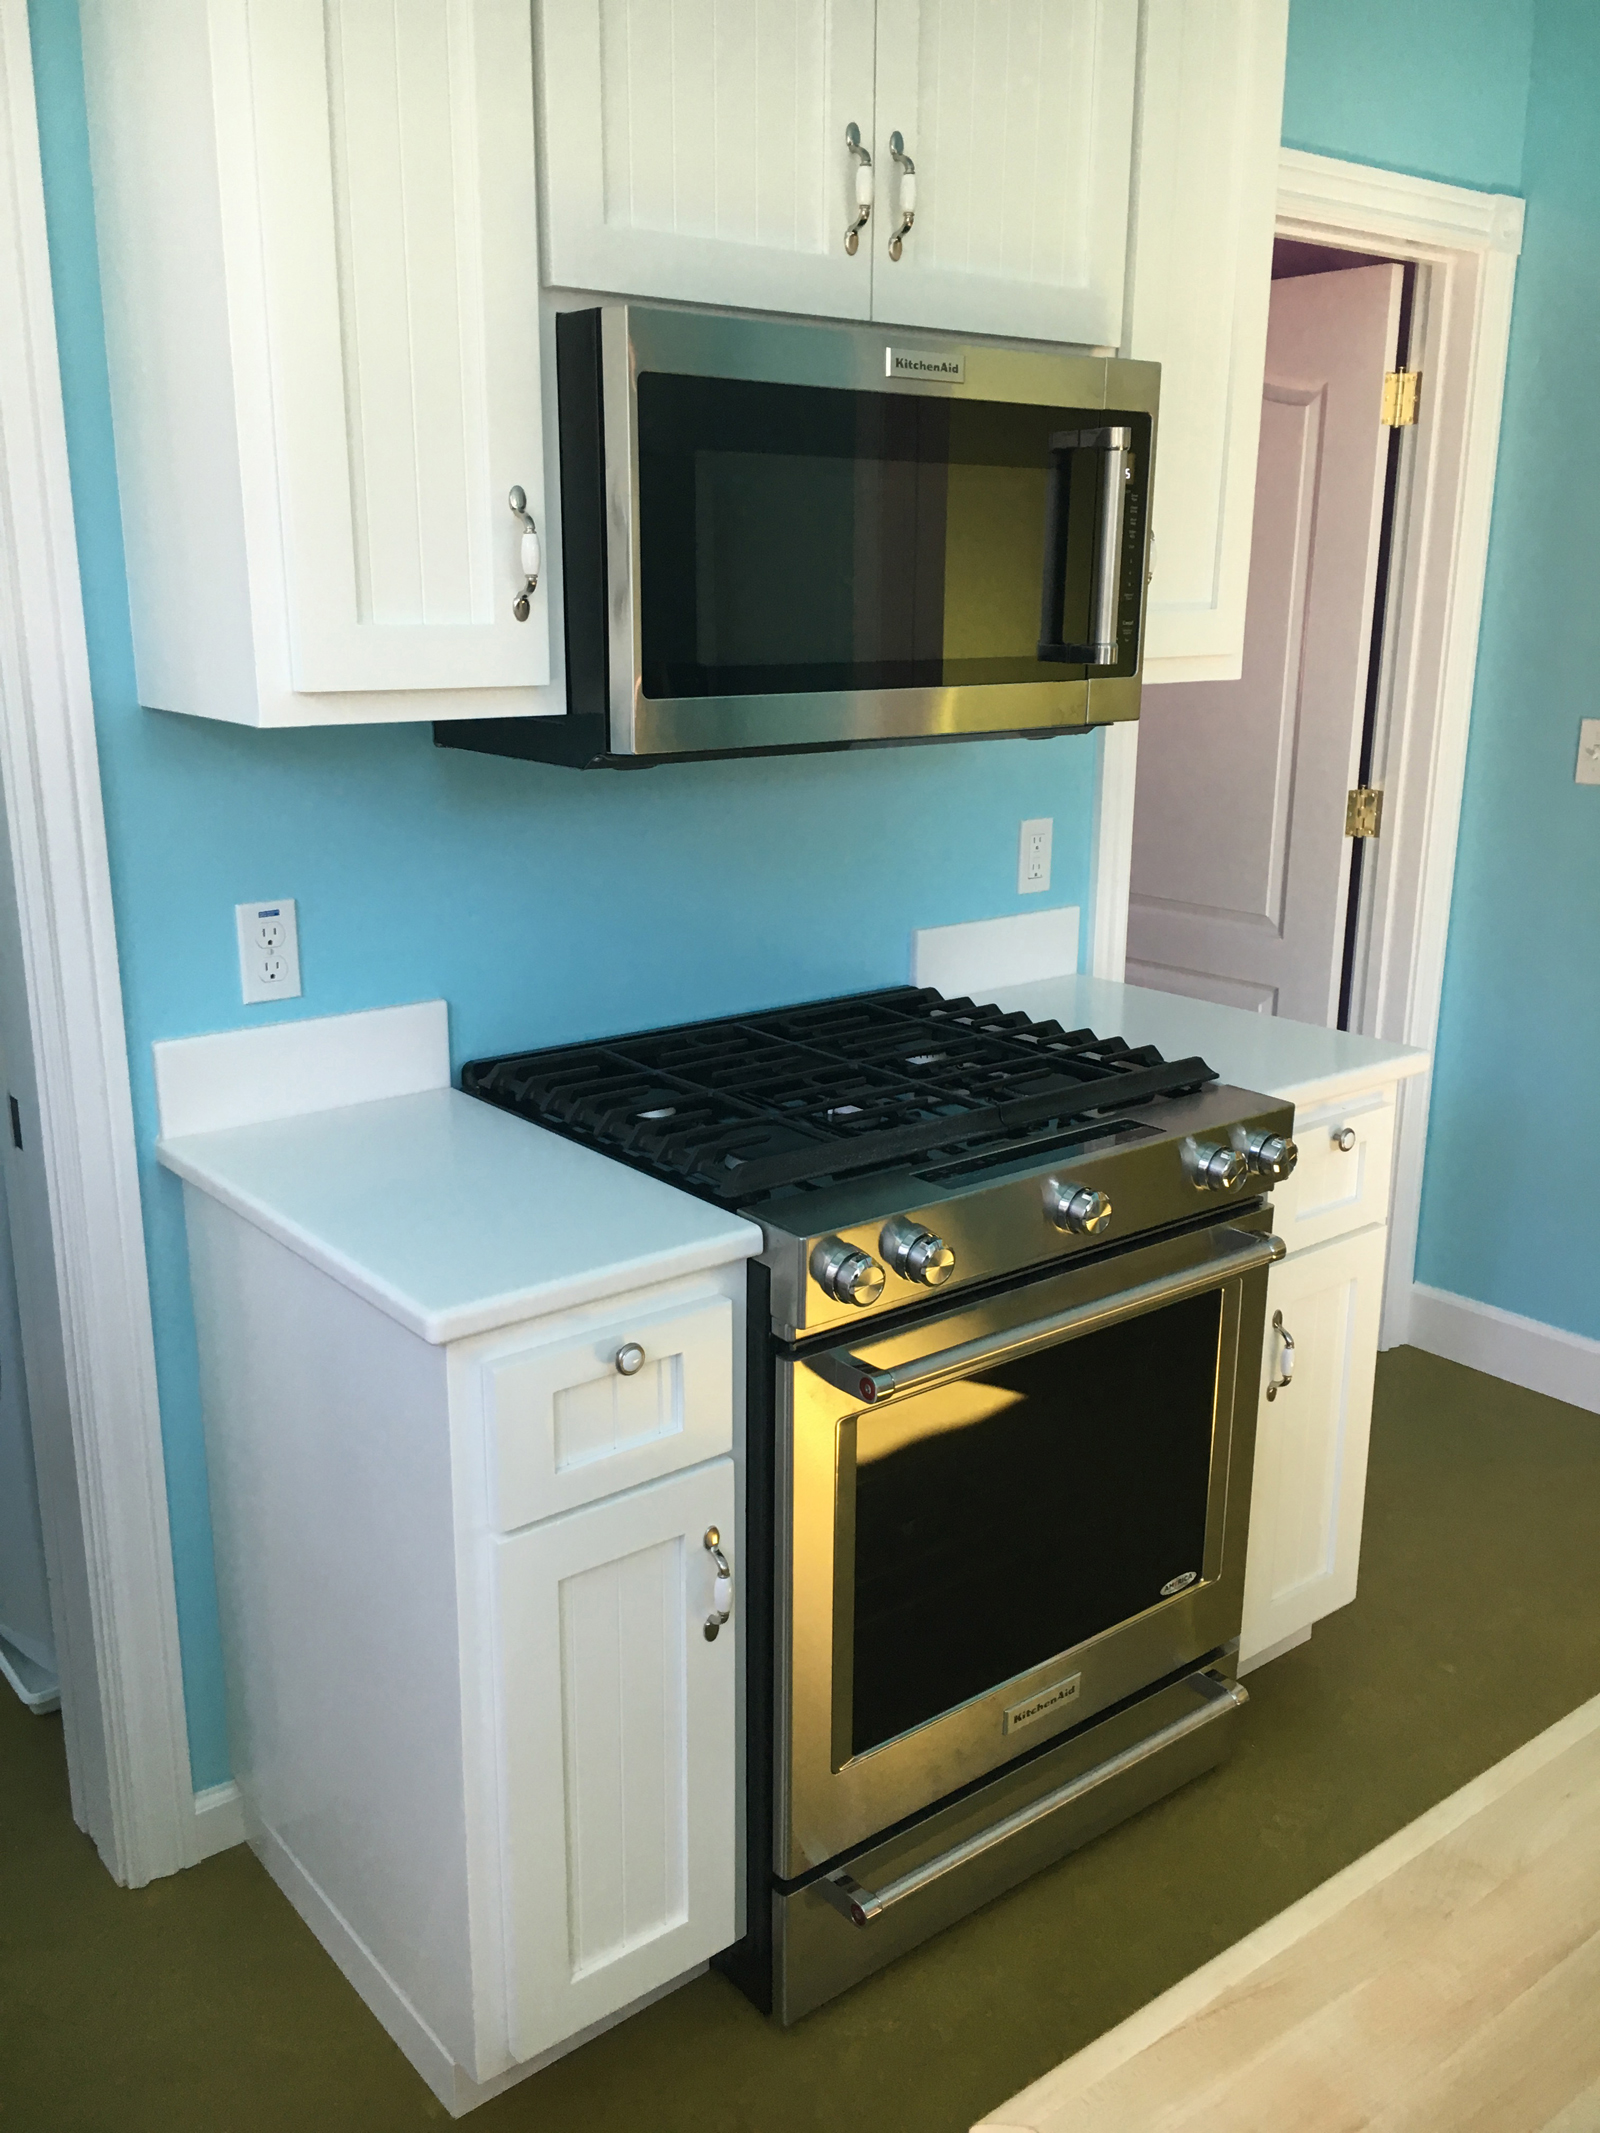 Contra Costa Appliance And Kitchen Center - Muir Creek Apartments In ...